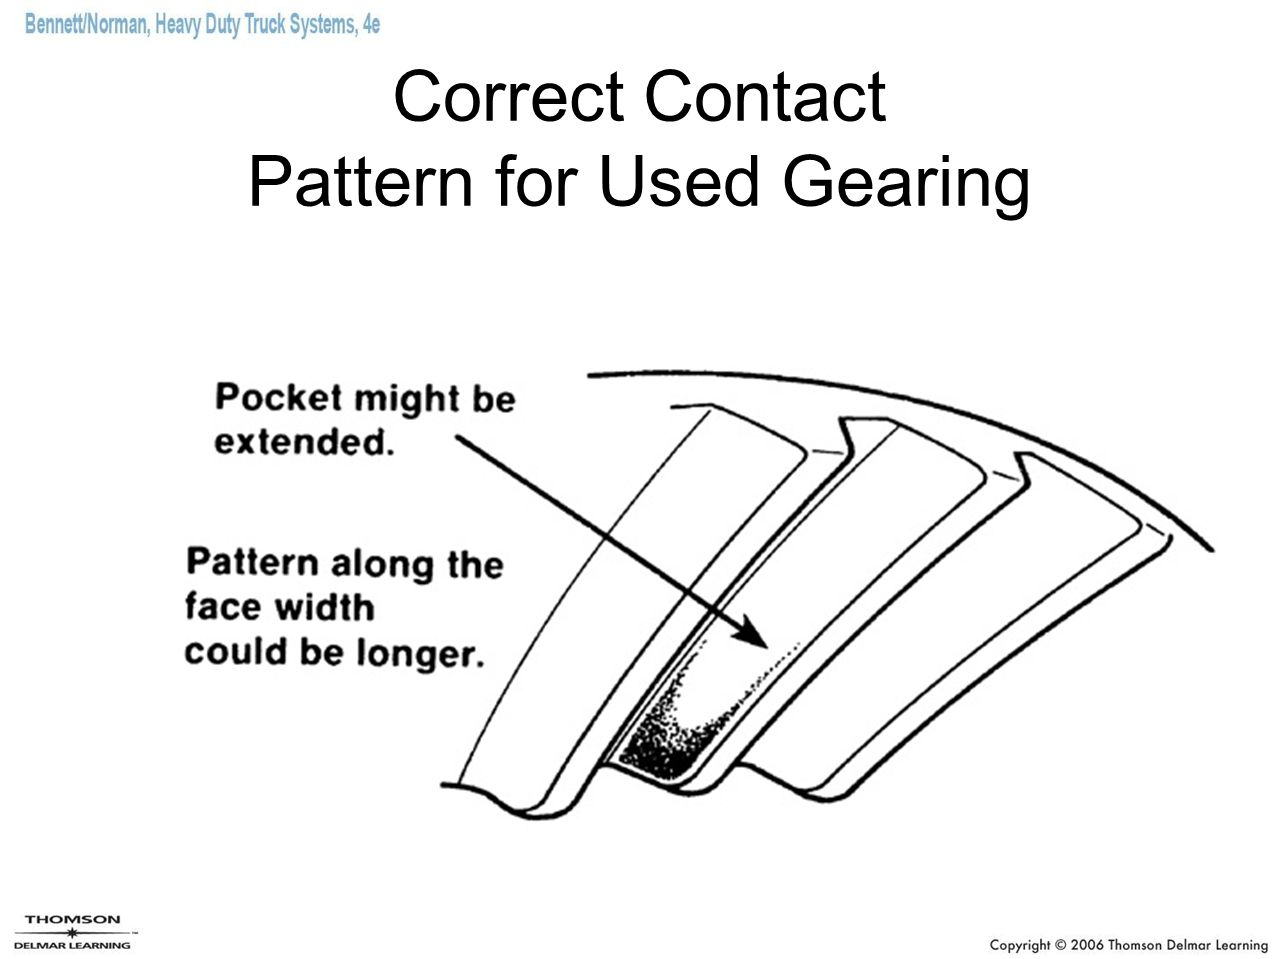 Correct Contact Pattern for Used Gearing